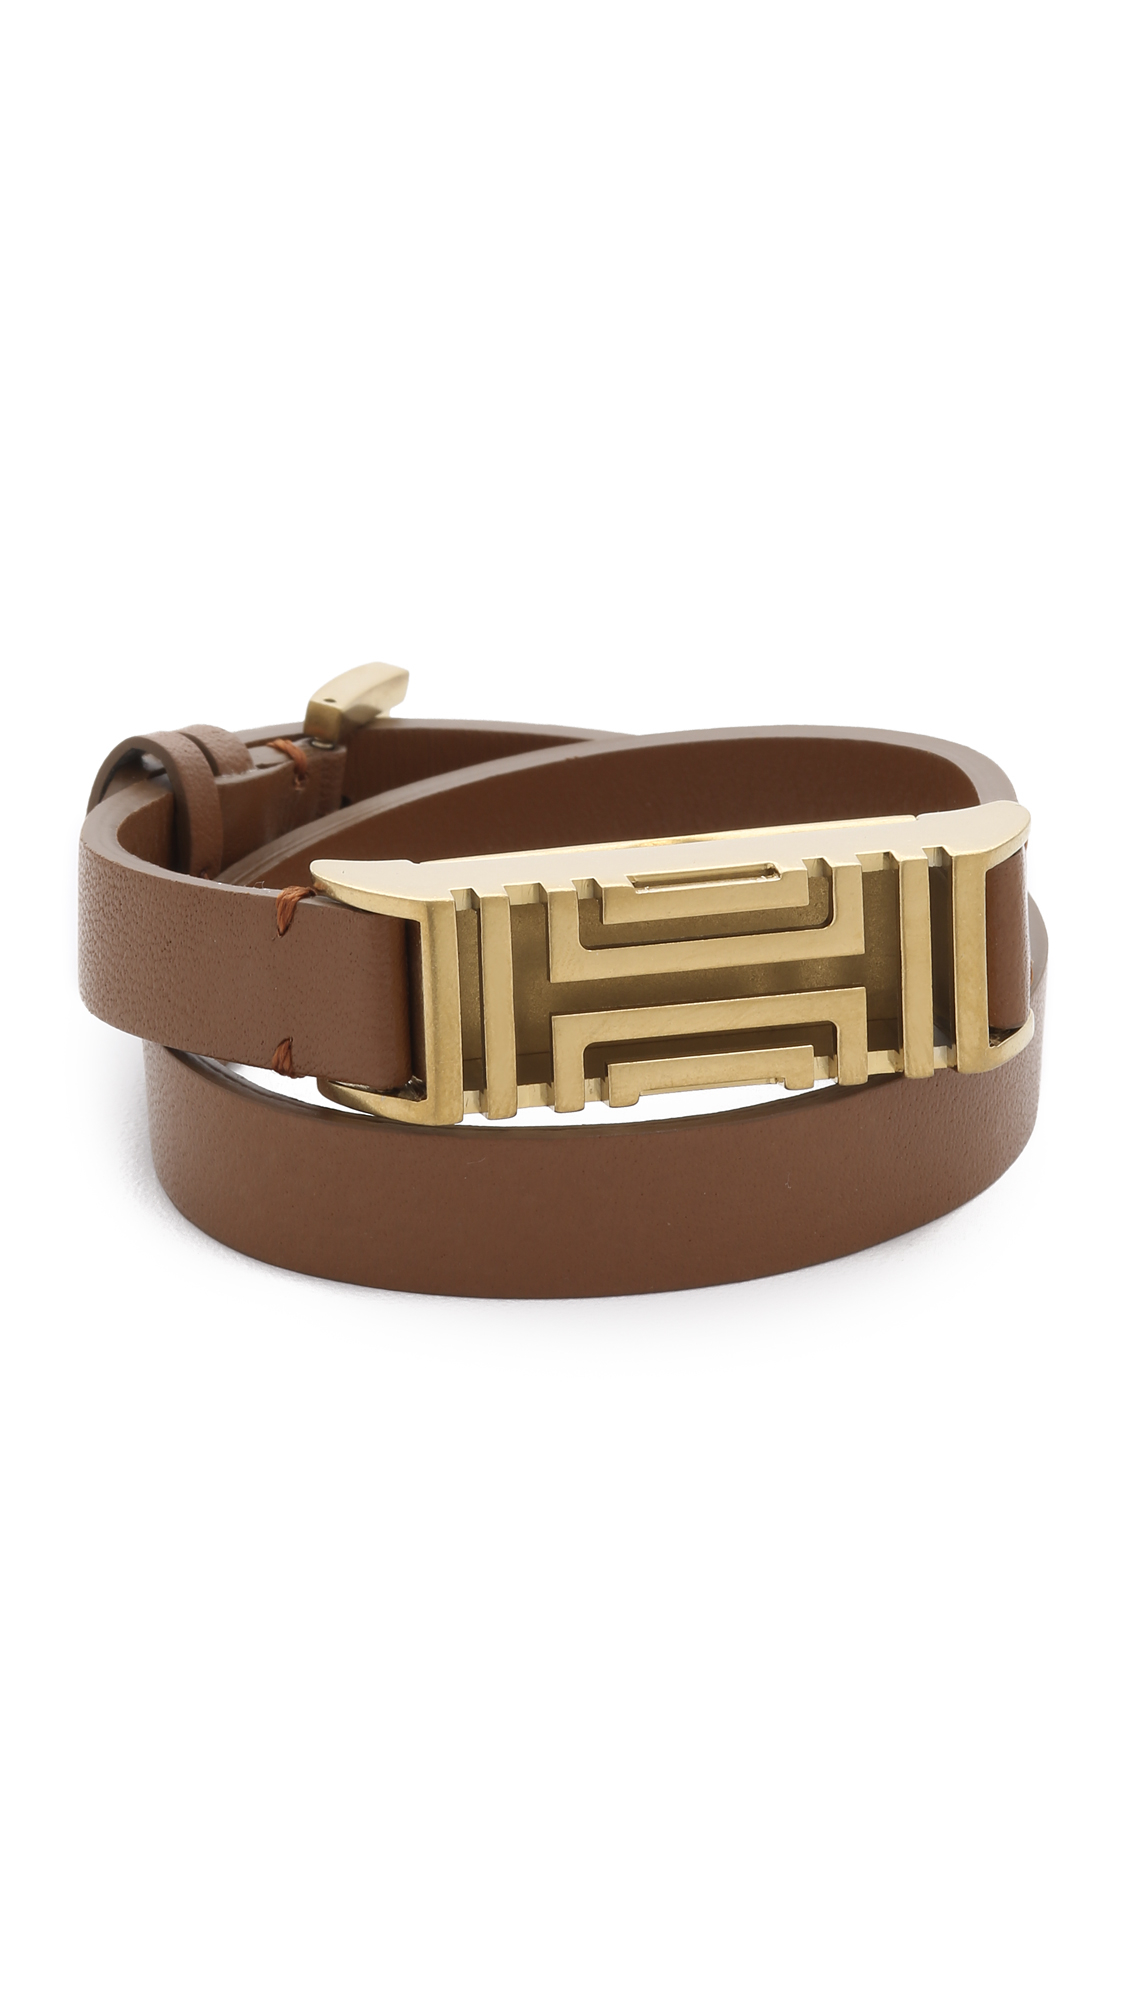 Tory burch for fitbit leather bracelet bark aged gold in for Tory burch jewelry amazon